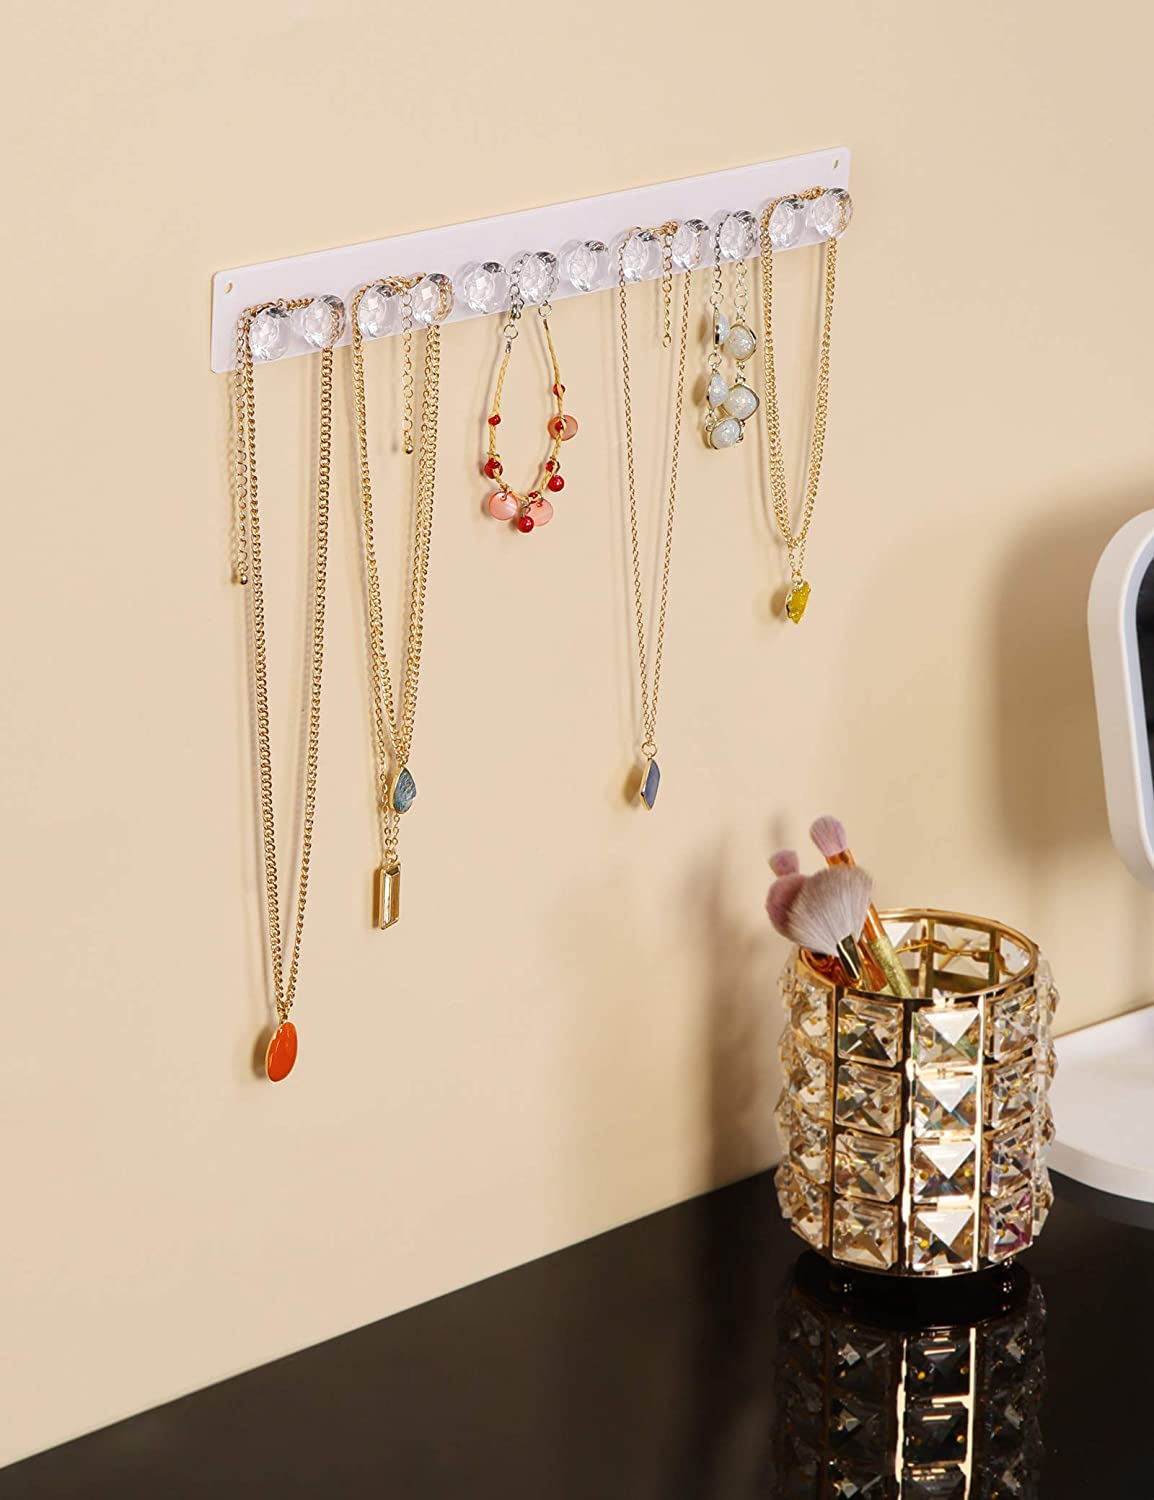 Mymazn 4 Pack Necklace Hangers Acrylic Necklaces Holder Wall Mounted Jewelry Organizer Hanging with 12 Diamond Shape Hooks Gift for Girls Women Jewelry Hangers for Necklace